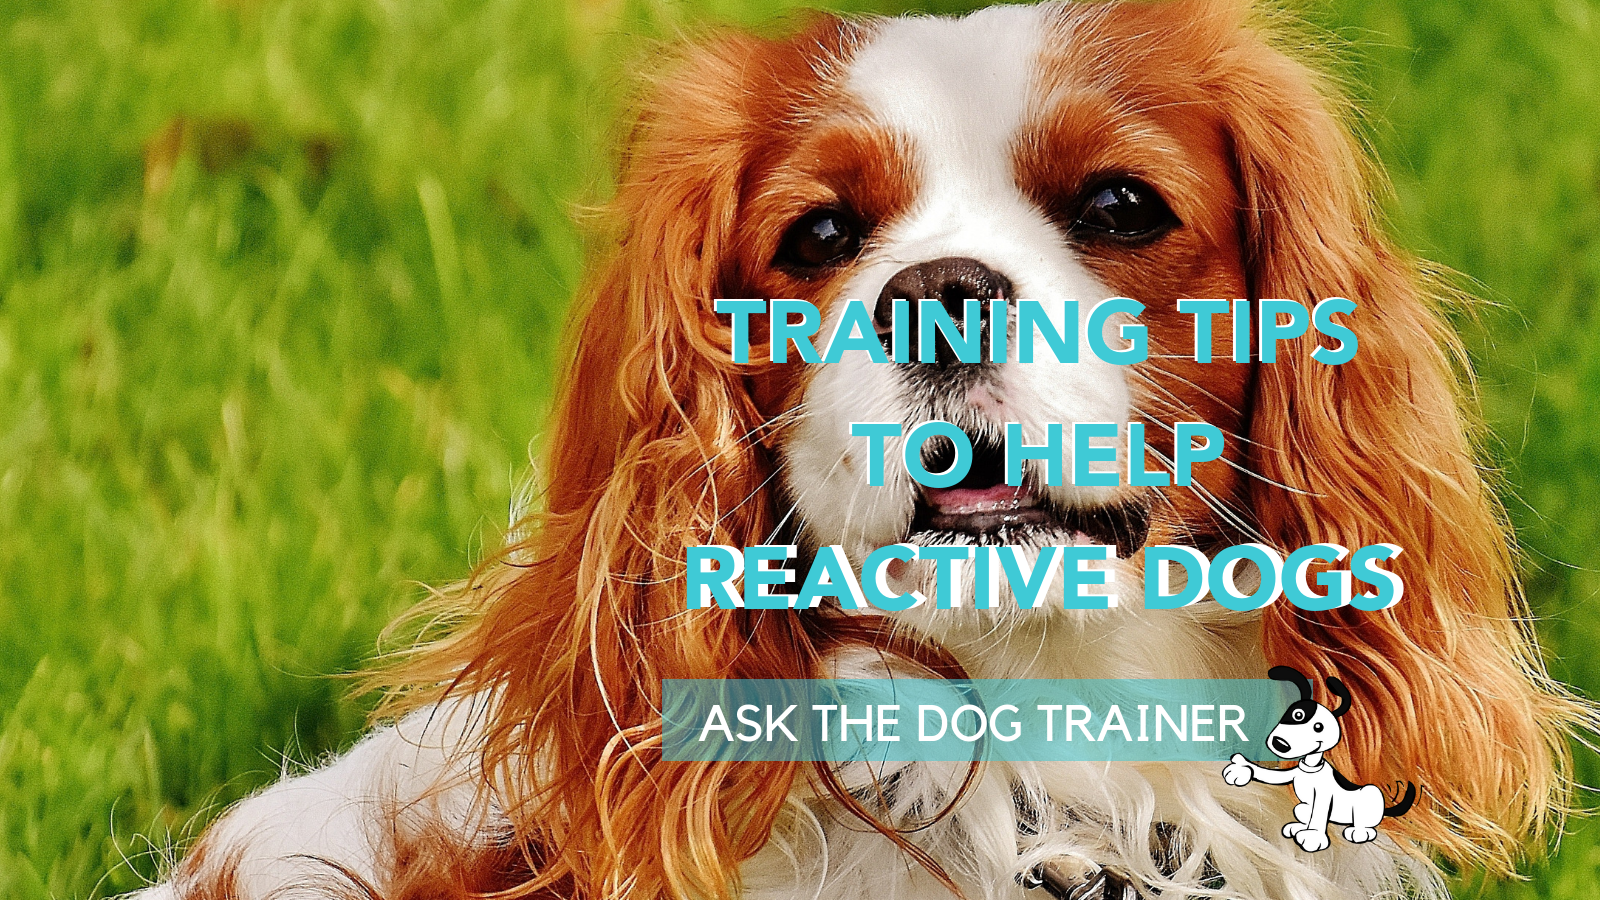 TRAINING TIPS FOR REACTIVE DOGS